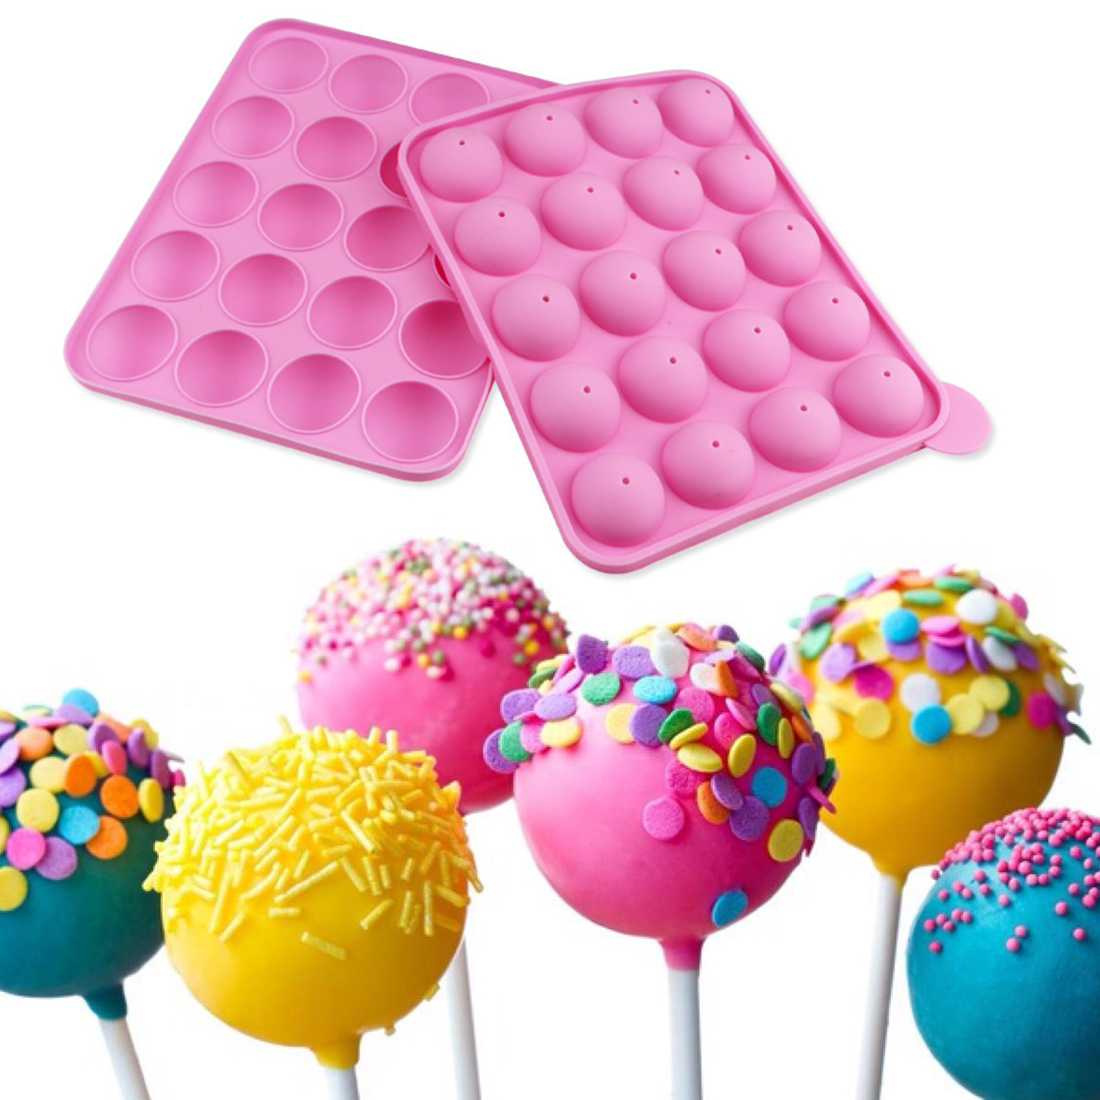 1pc 20 Holes Silicone Cake Pop Mold Cupcake Lollipop Mold